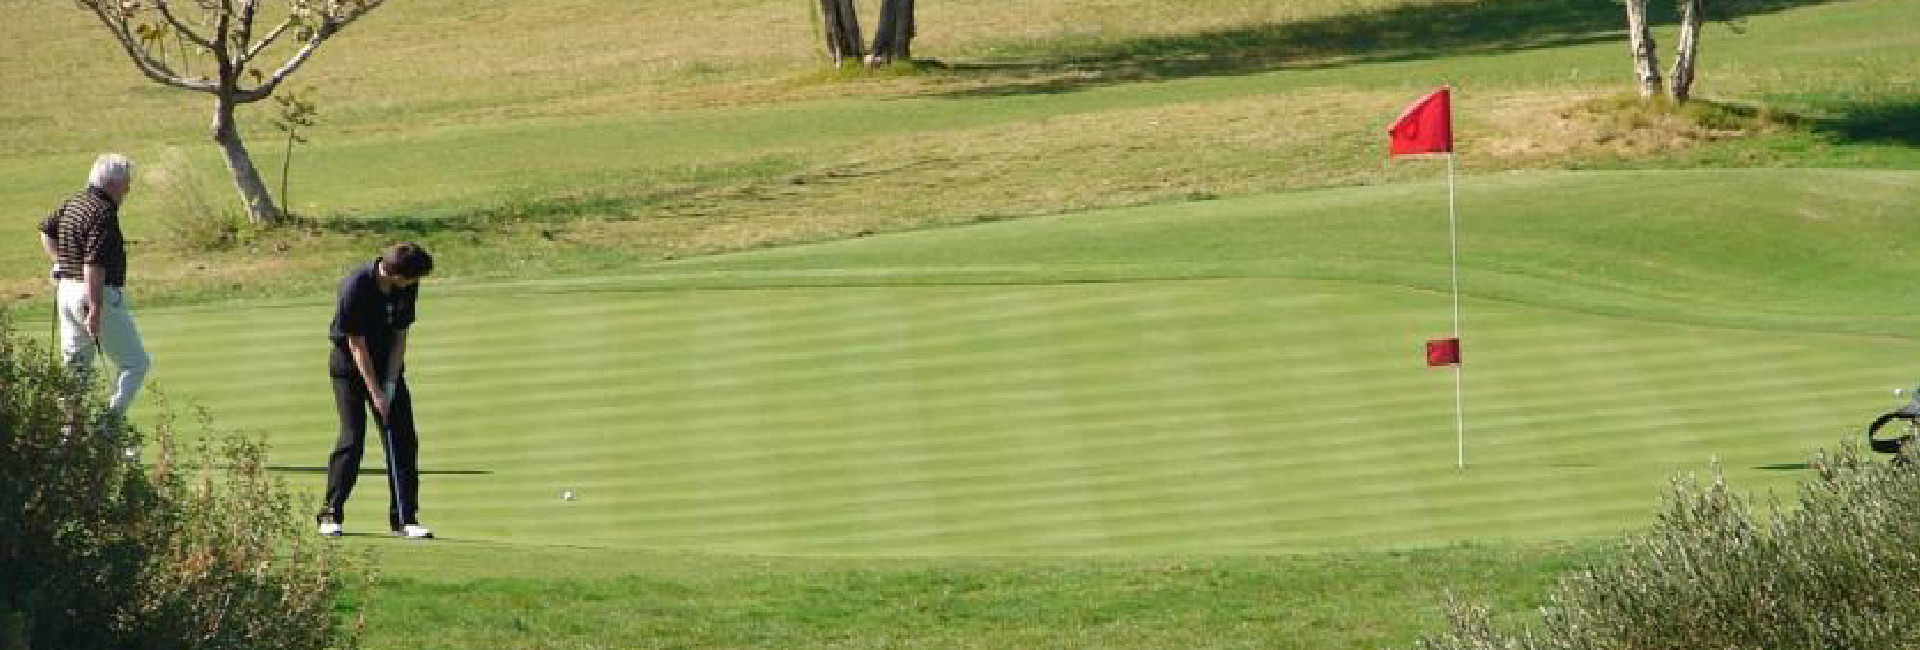 Playing Golf In the Algarve Portugal